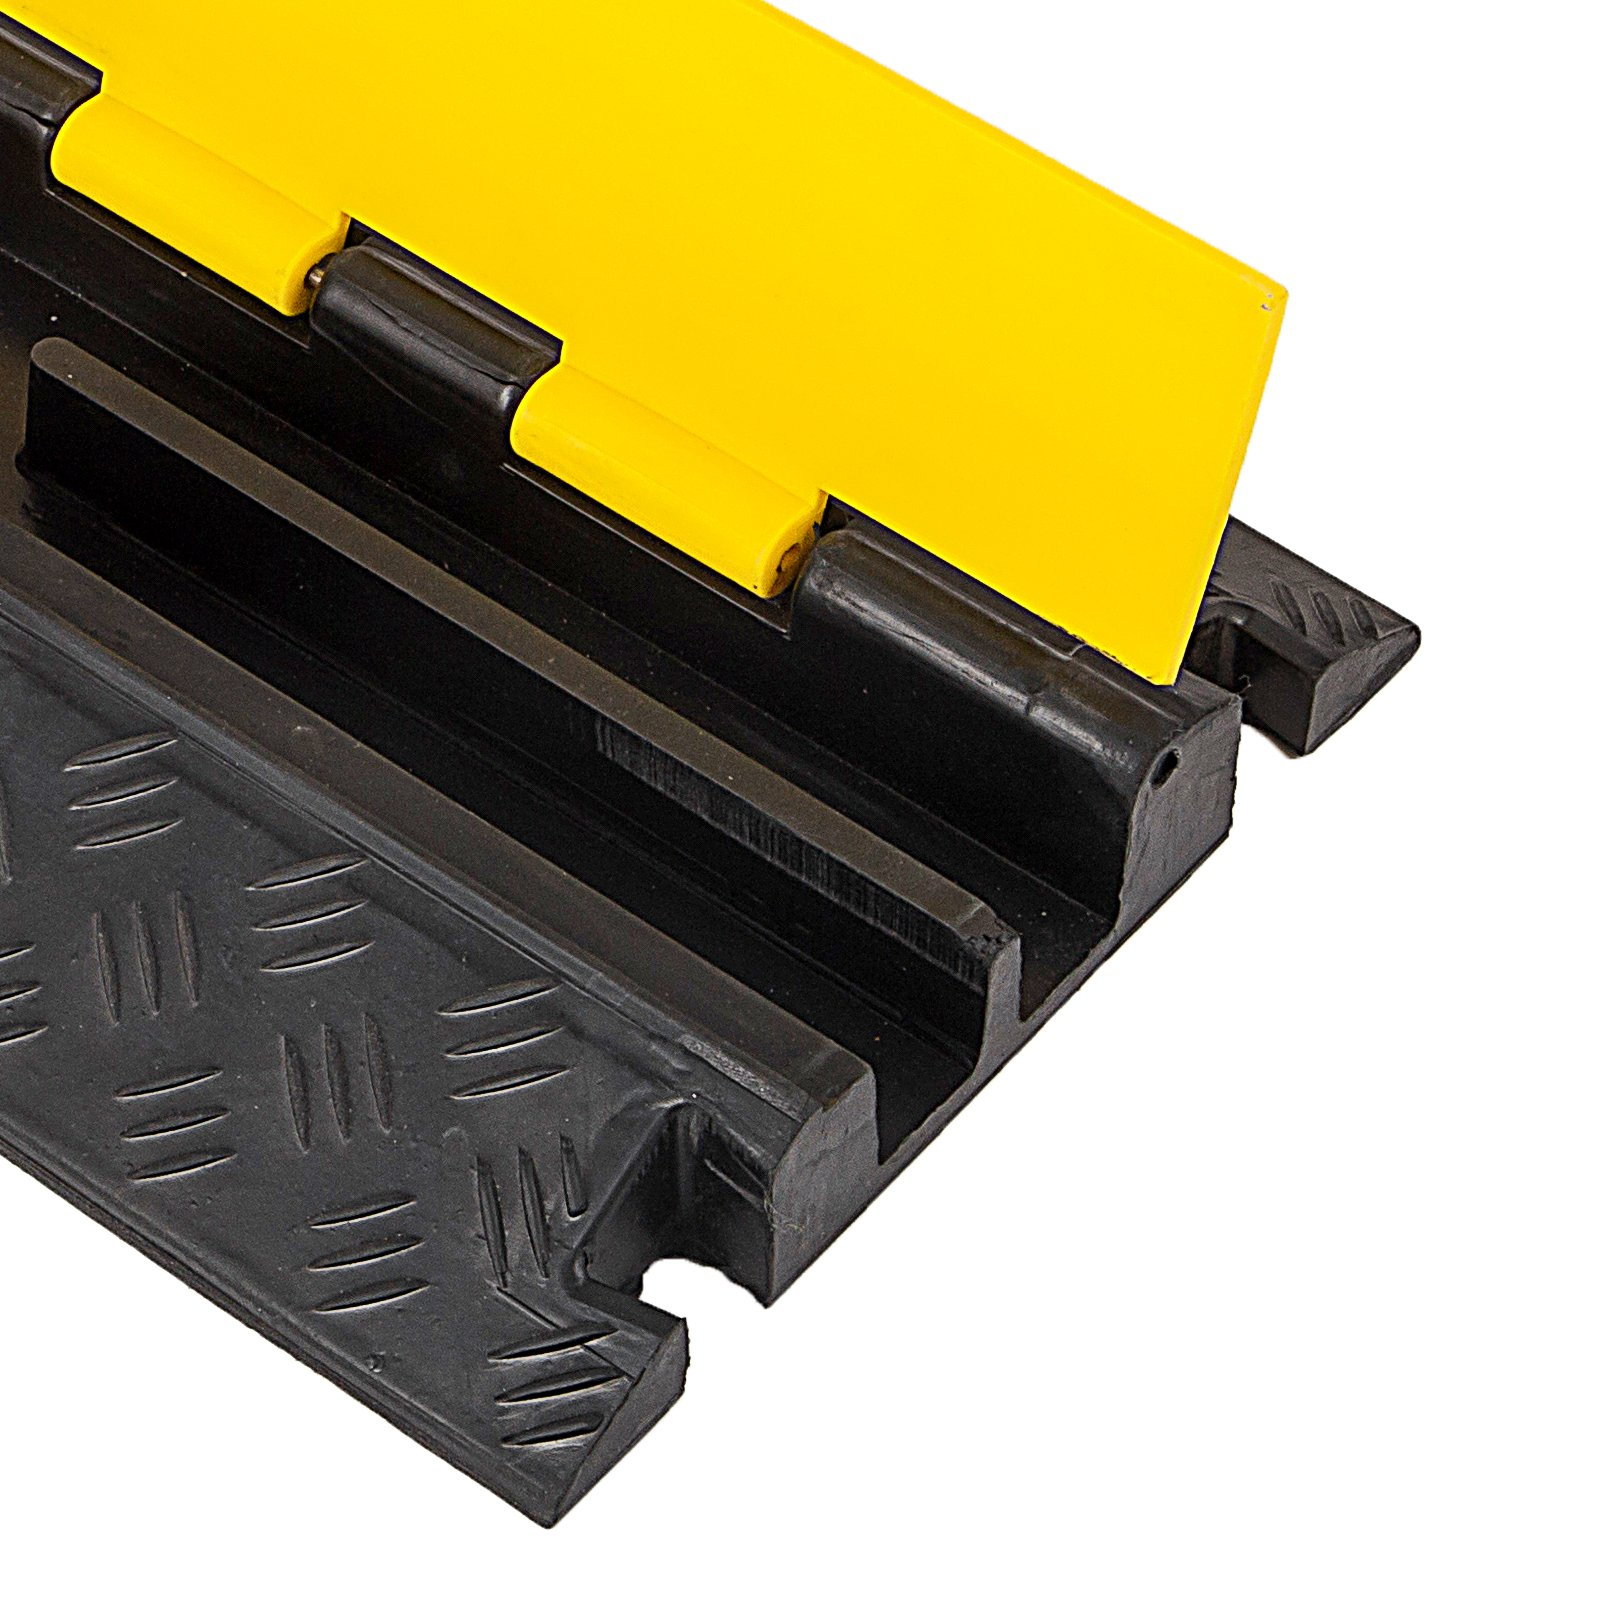 Happybuy 4 Pack Rubber Cable Protector Ramp 2 Channel Heavy Duty 66,000LB Load Capacity Cable Wire Cord Cover Ramp Speed Bump Driveway Hose Cable Ramp Protective Cover (2-Channel, 4Pack/66000Lbs) by Happybuy (Image #9)